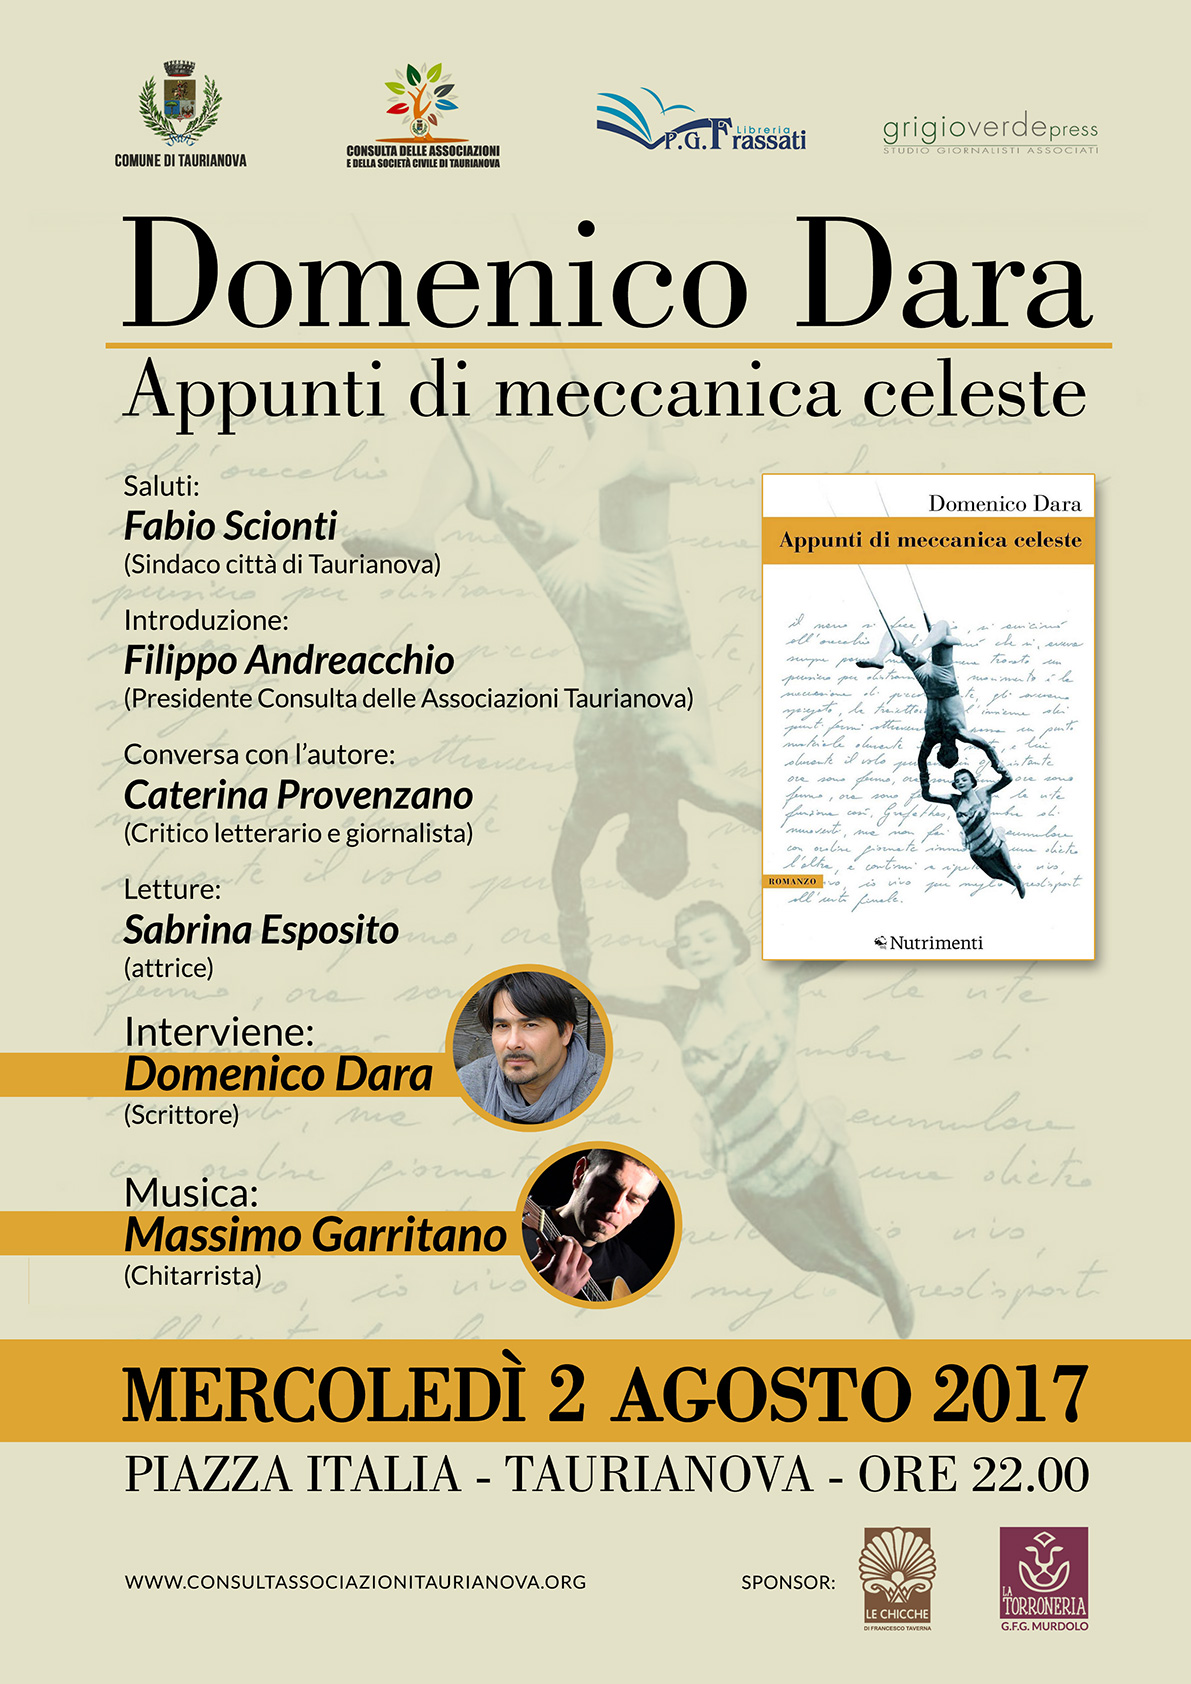 Evento Domenico DARA 2 agosto 2017